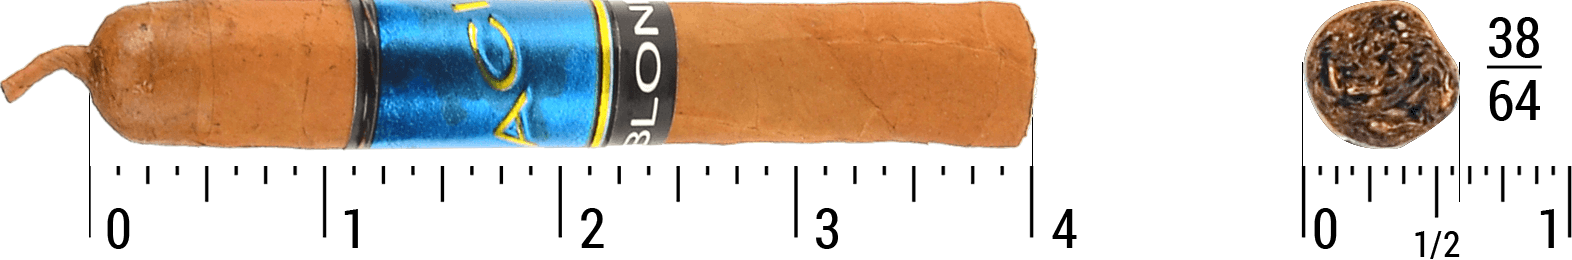 Acid Blondie Single Cigar Size